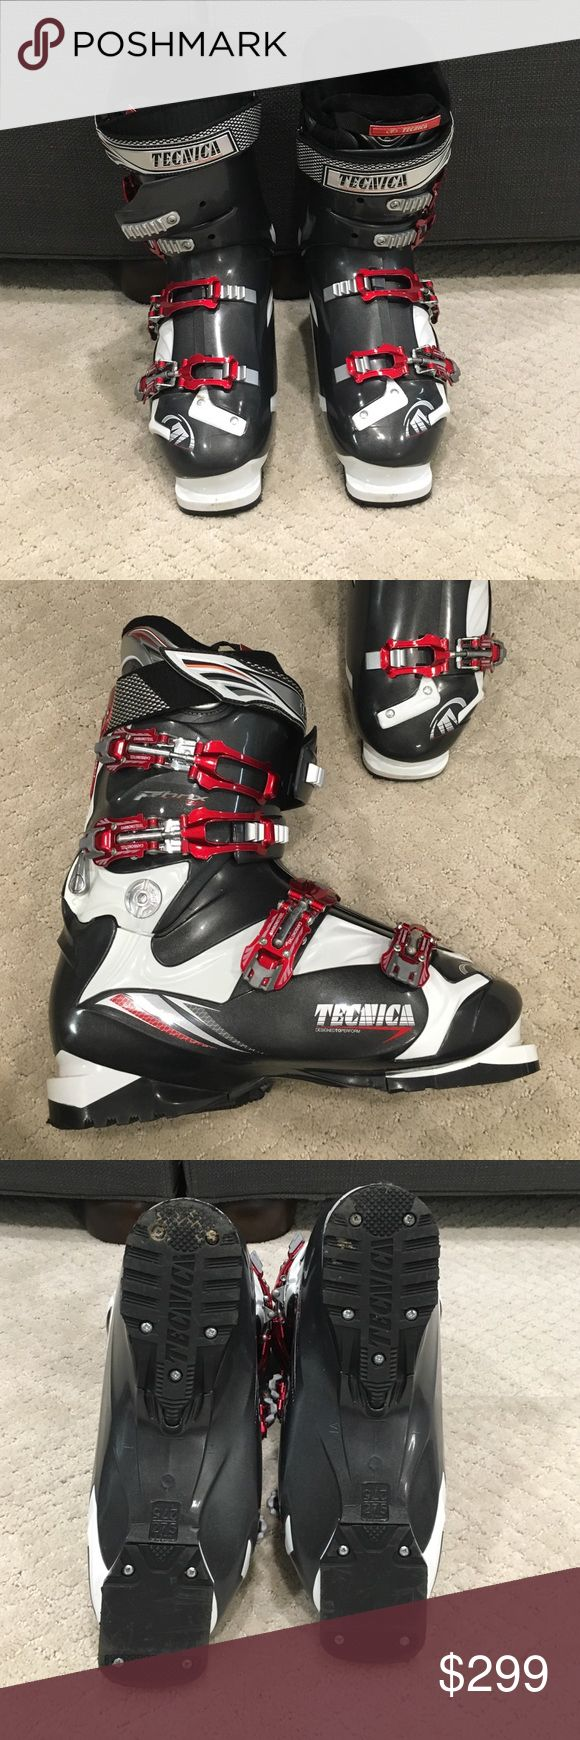 MENS Tecnica Ski boots 27.5 on heel (sz 10 ) MENS Tecnina PHNX 80 style ski boots. Heel says 27.5. Worn once. Perfect condition. Grey white red. Inside black. Side of boot says 315 mm / 275. For size 10 MENS. Pet / smoke free home. Tecnica Shoes Rain & Snow Boots